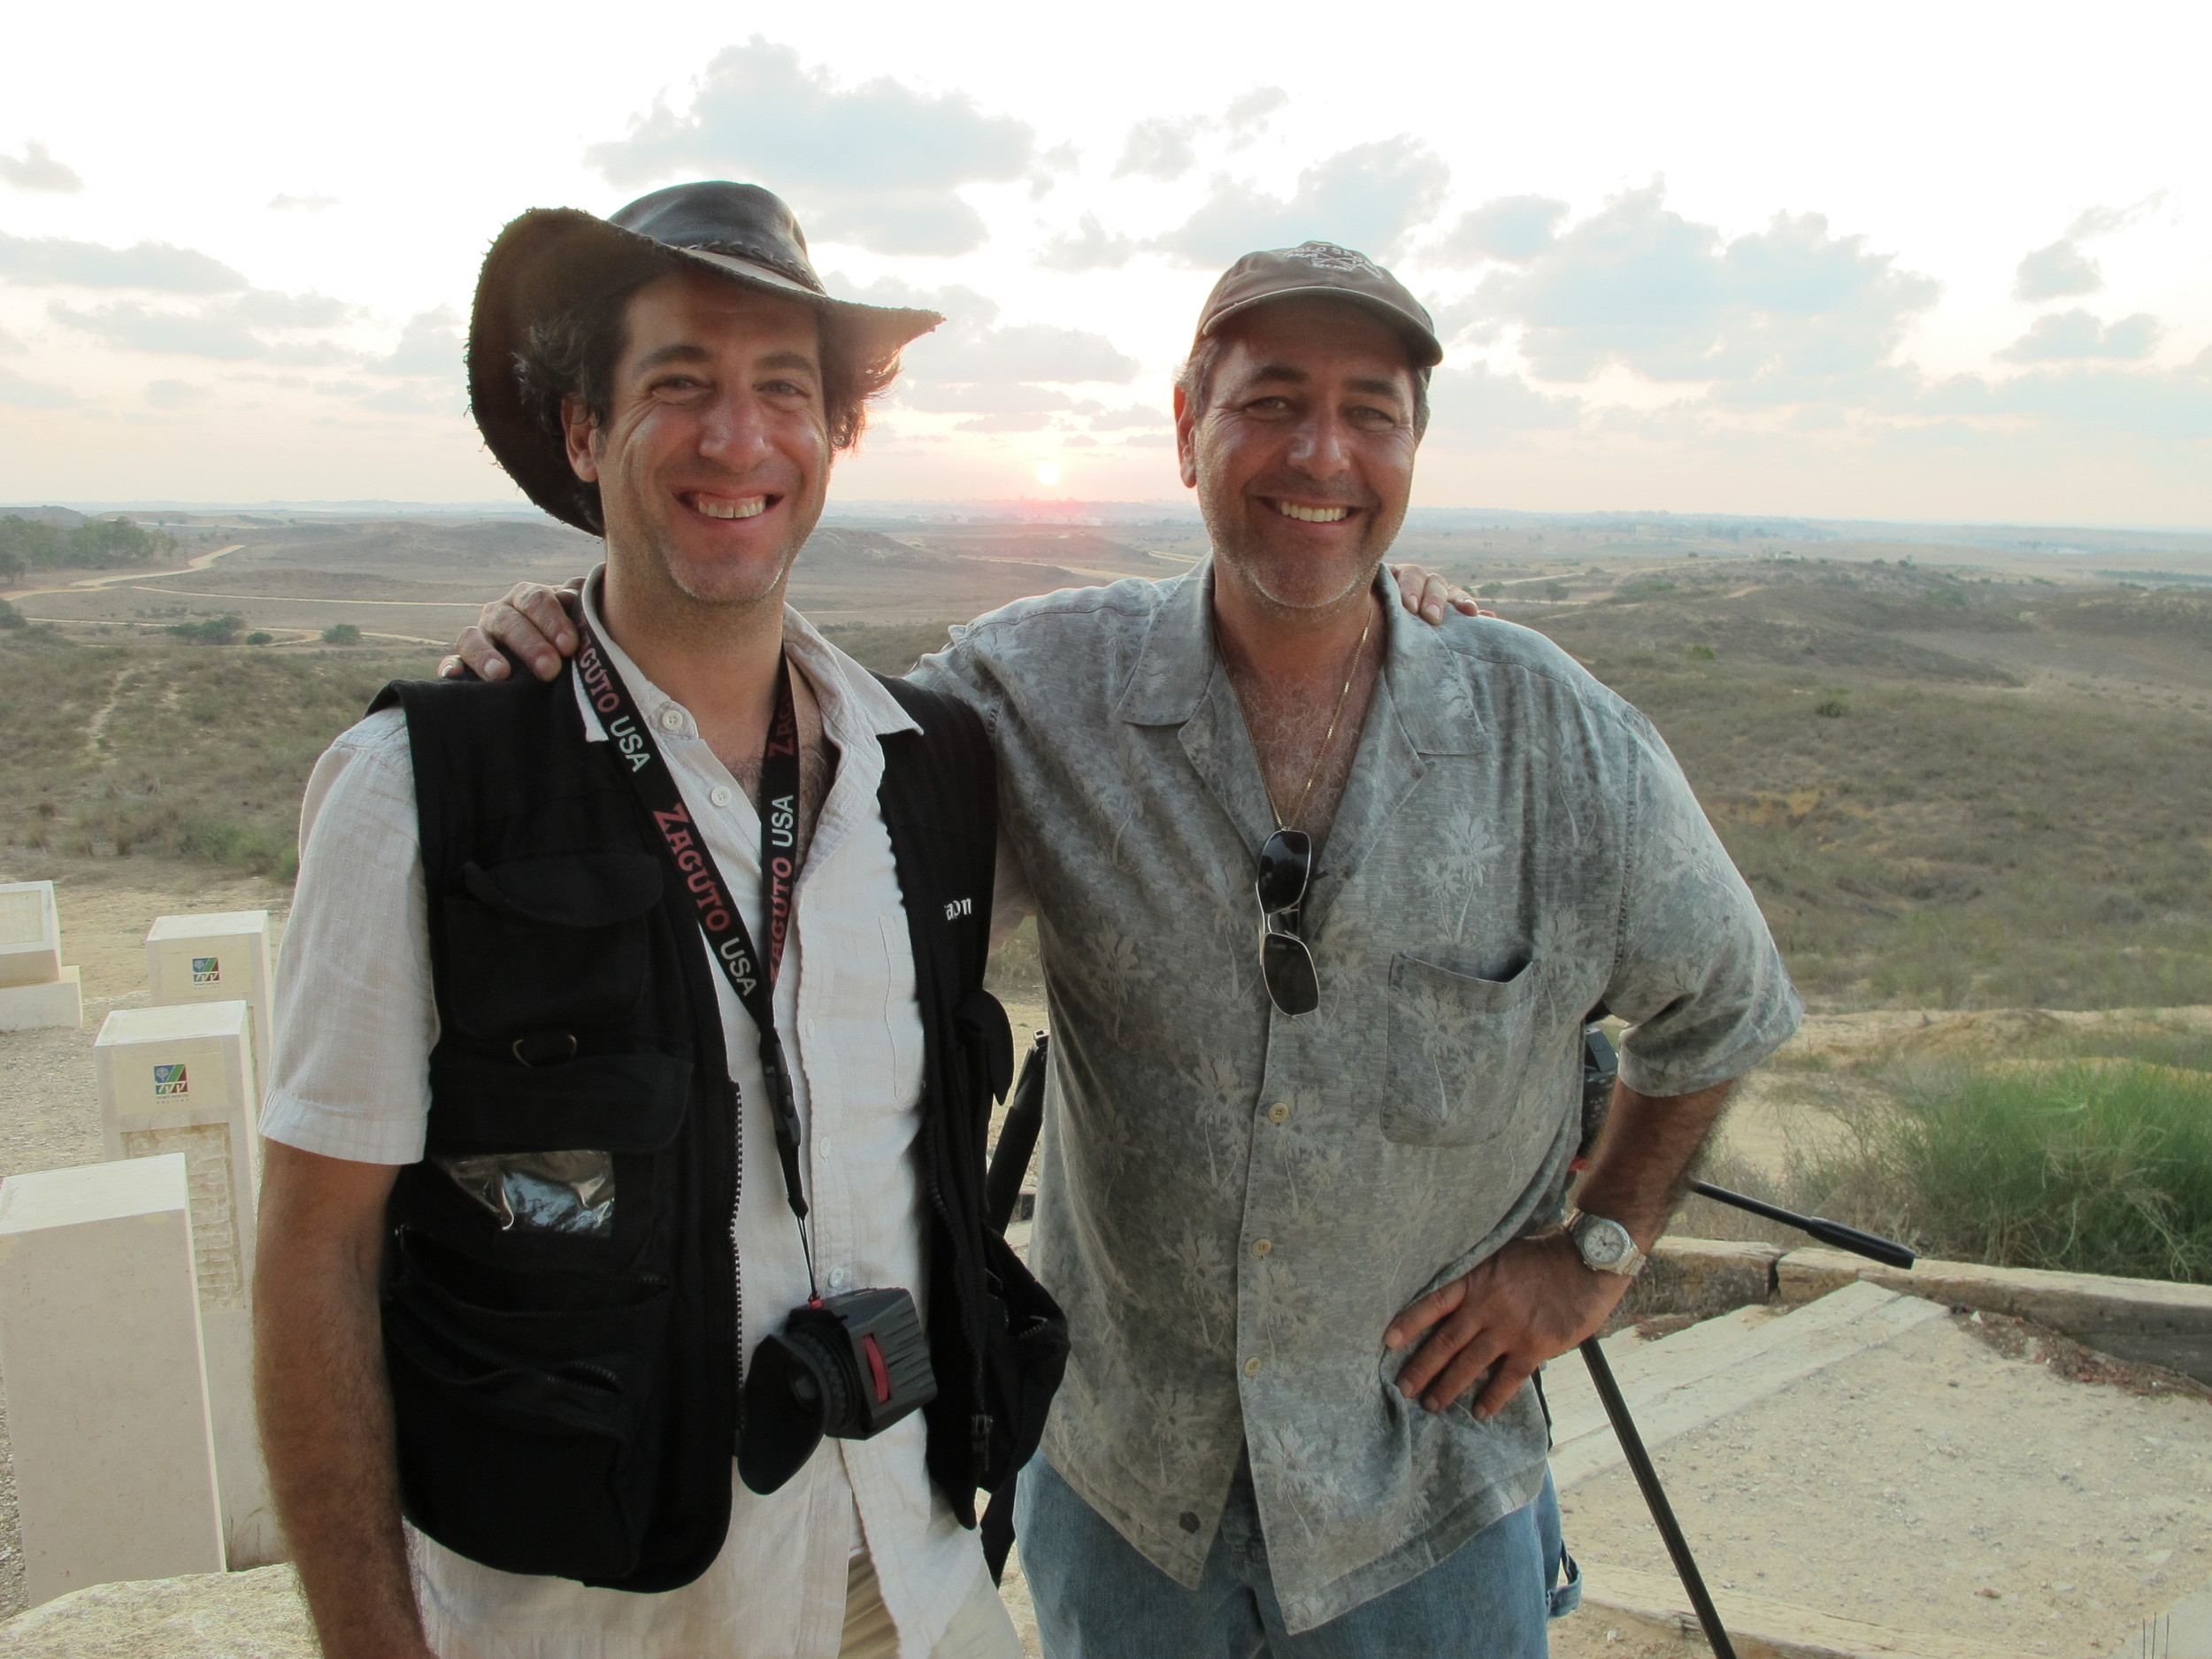 On assignment near West Bank with Newsweek photographer David Blumenfeld